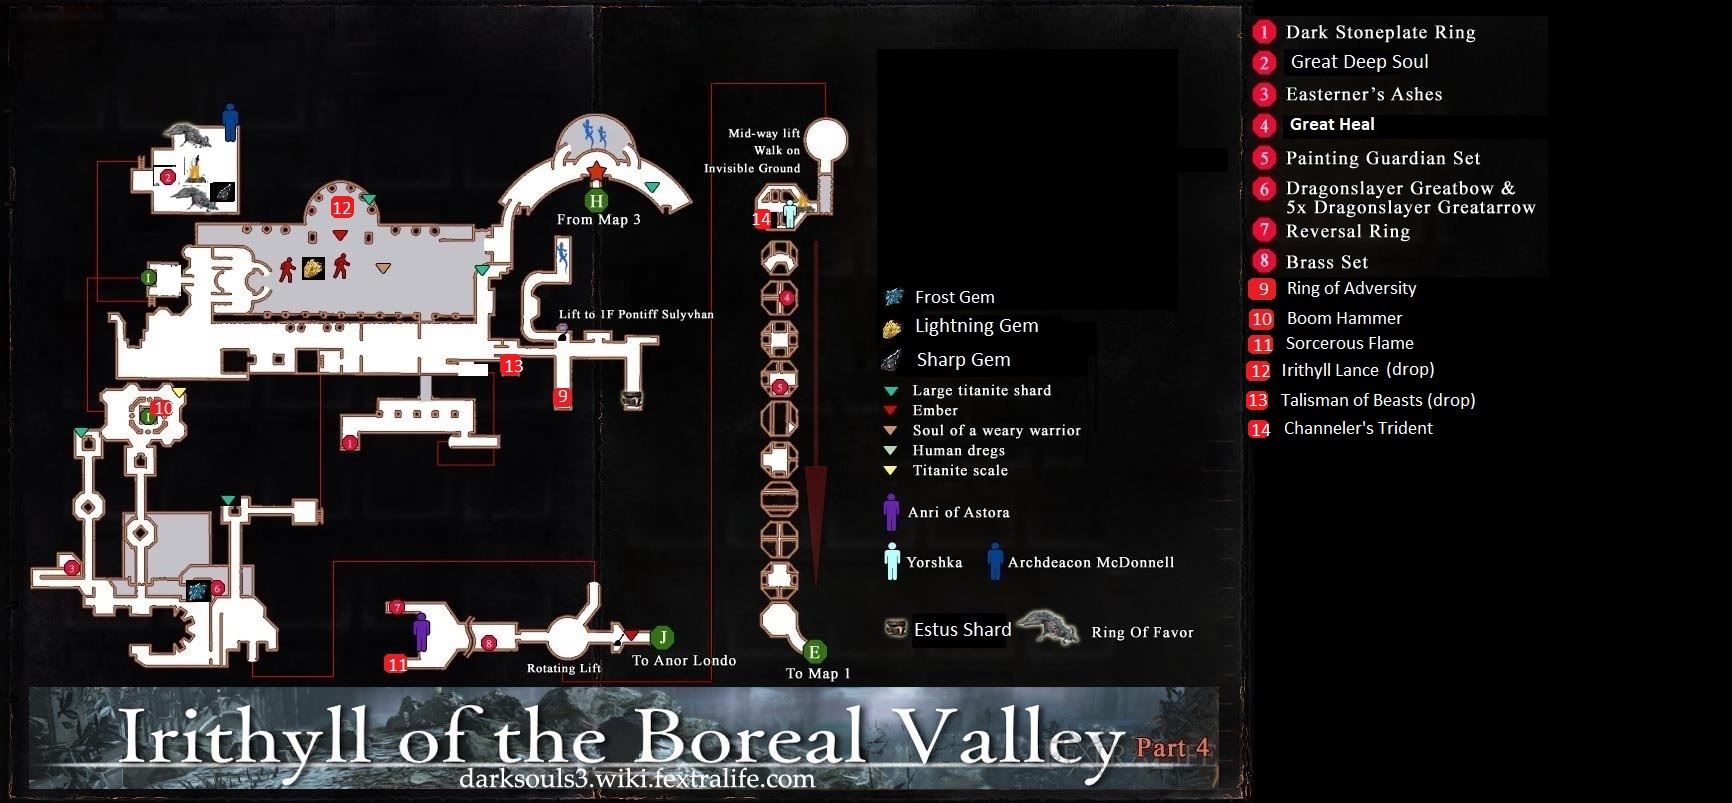 irithyll_of_the_boreal_valley_map4.jpg